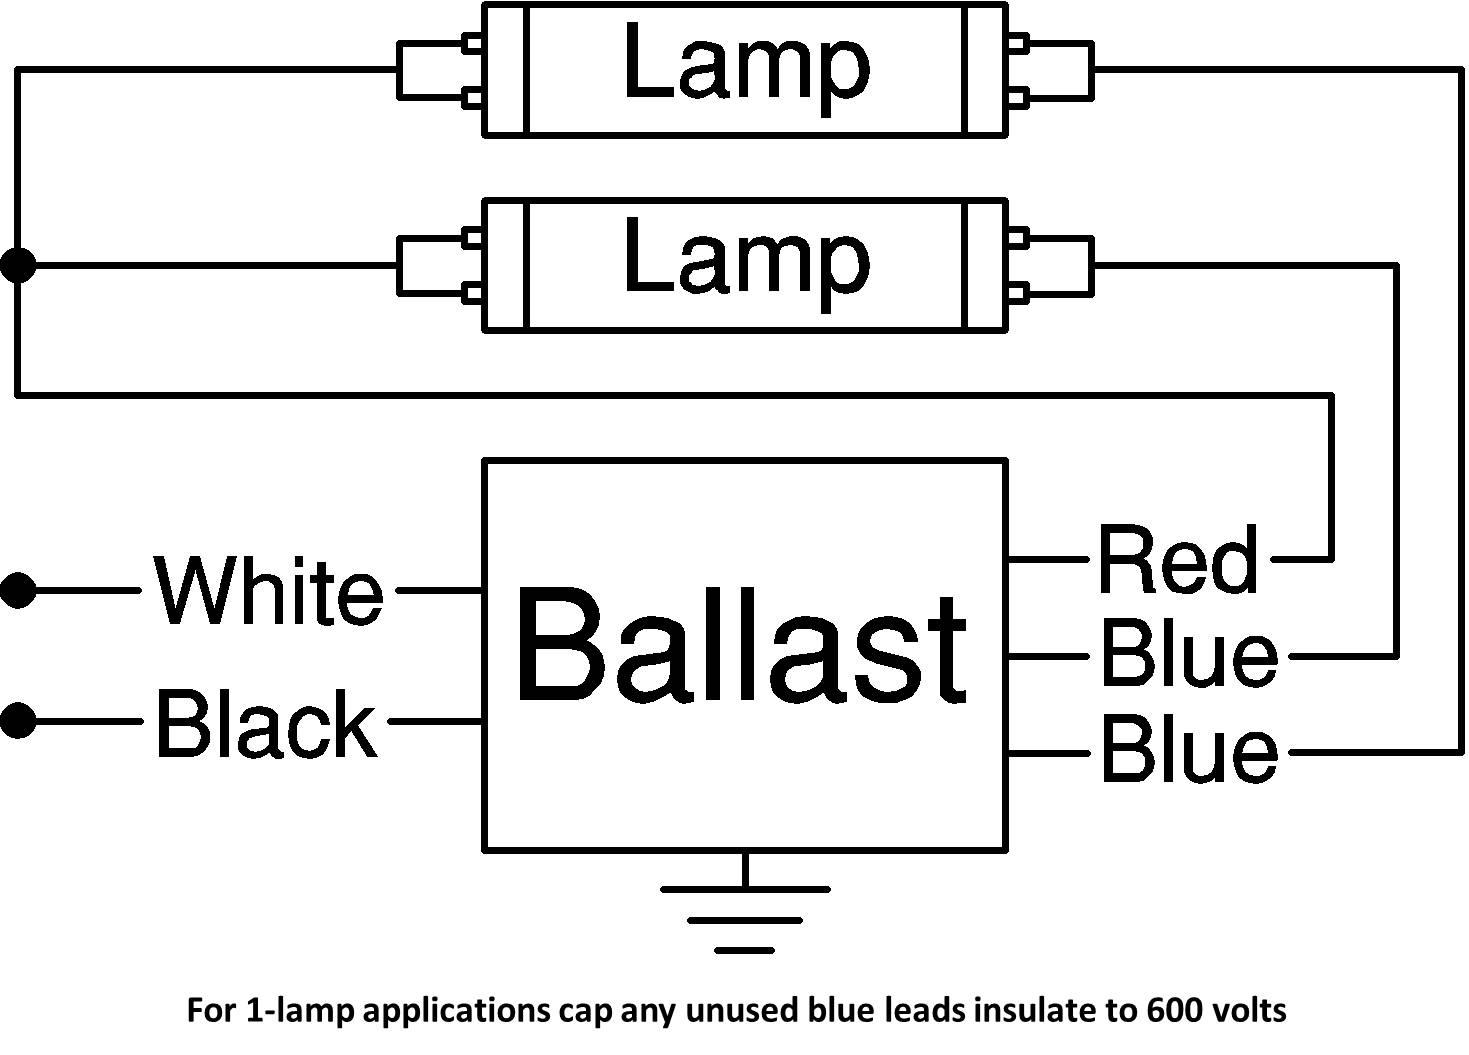 ballast wiring diagram t images bulb t ballast wiring ballast factor hpf fluorescent for 12 f32t8 linear lamps